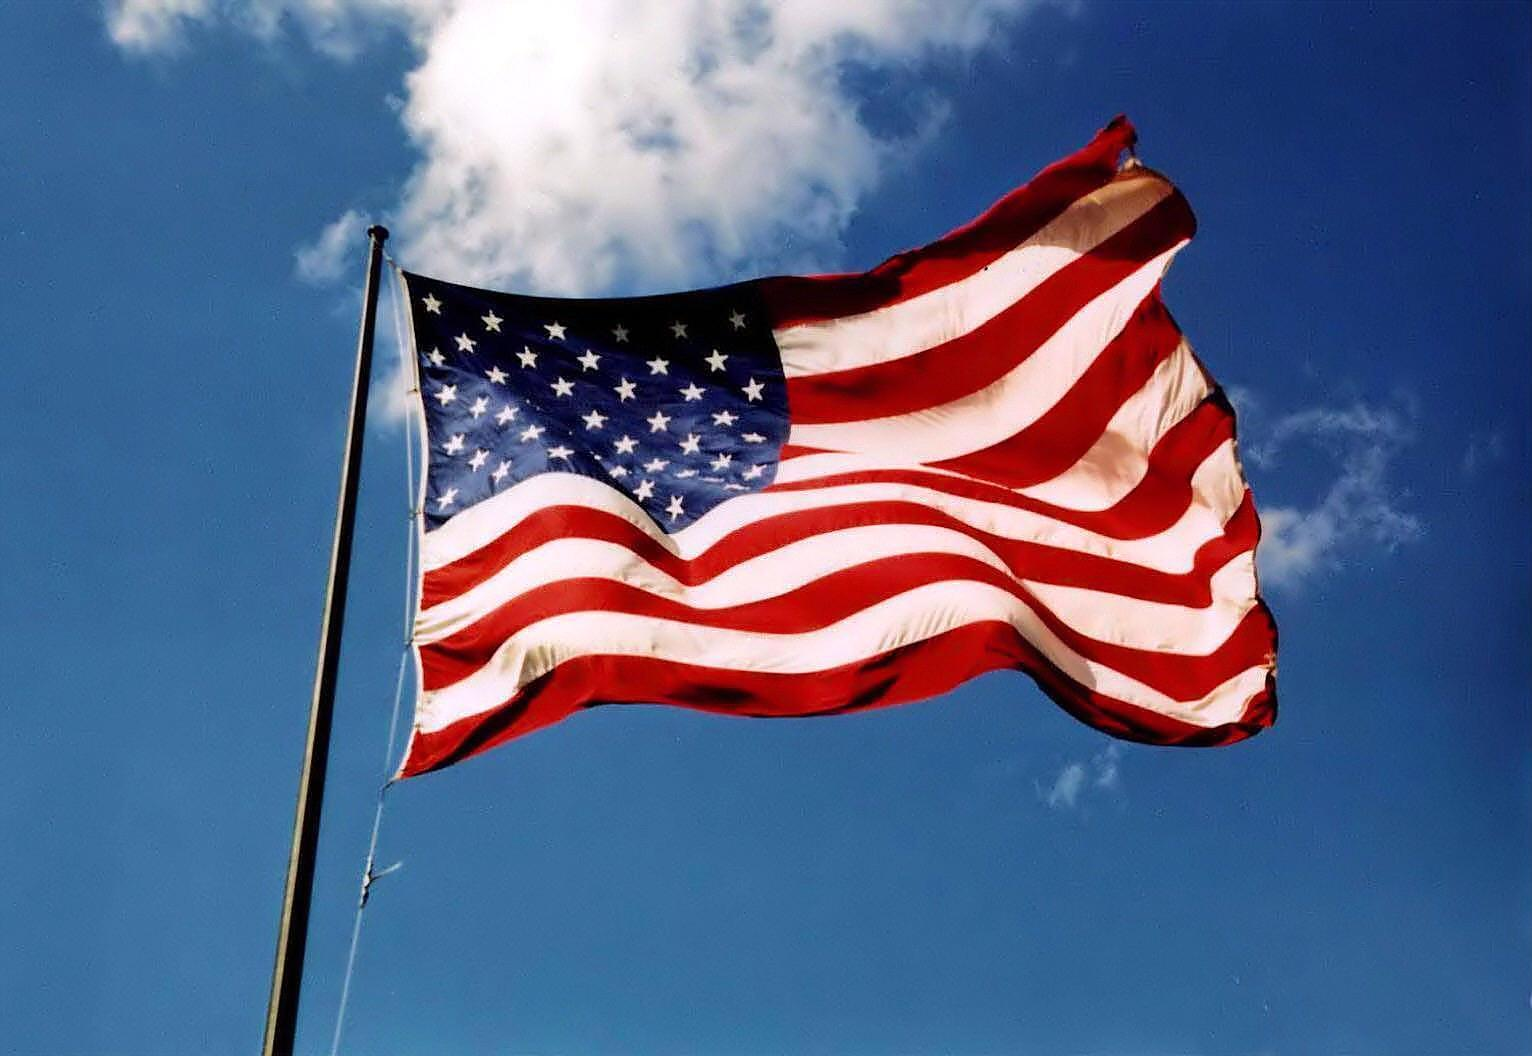 Us Flag 9731 Hd Wallpapers in Travel n World   Imagescicom 1532x1056